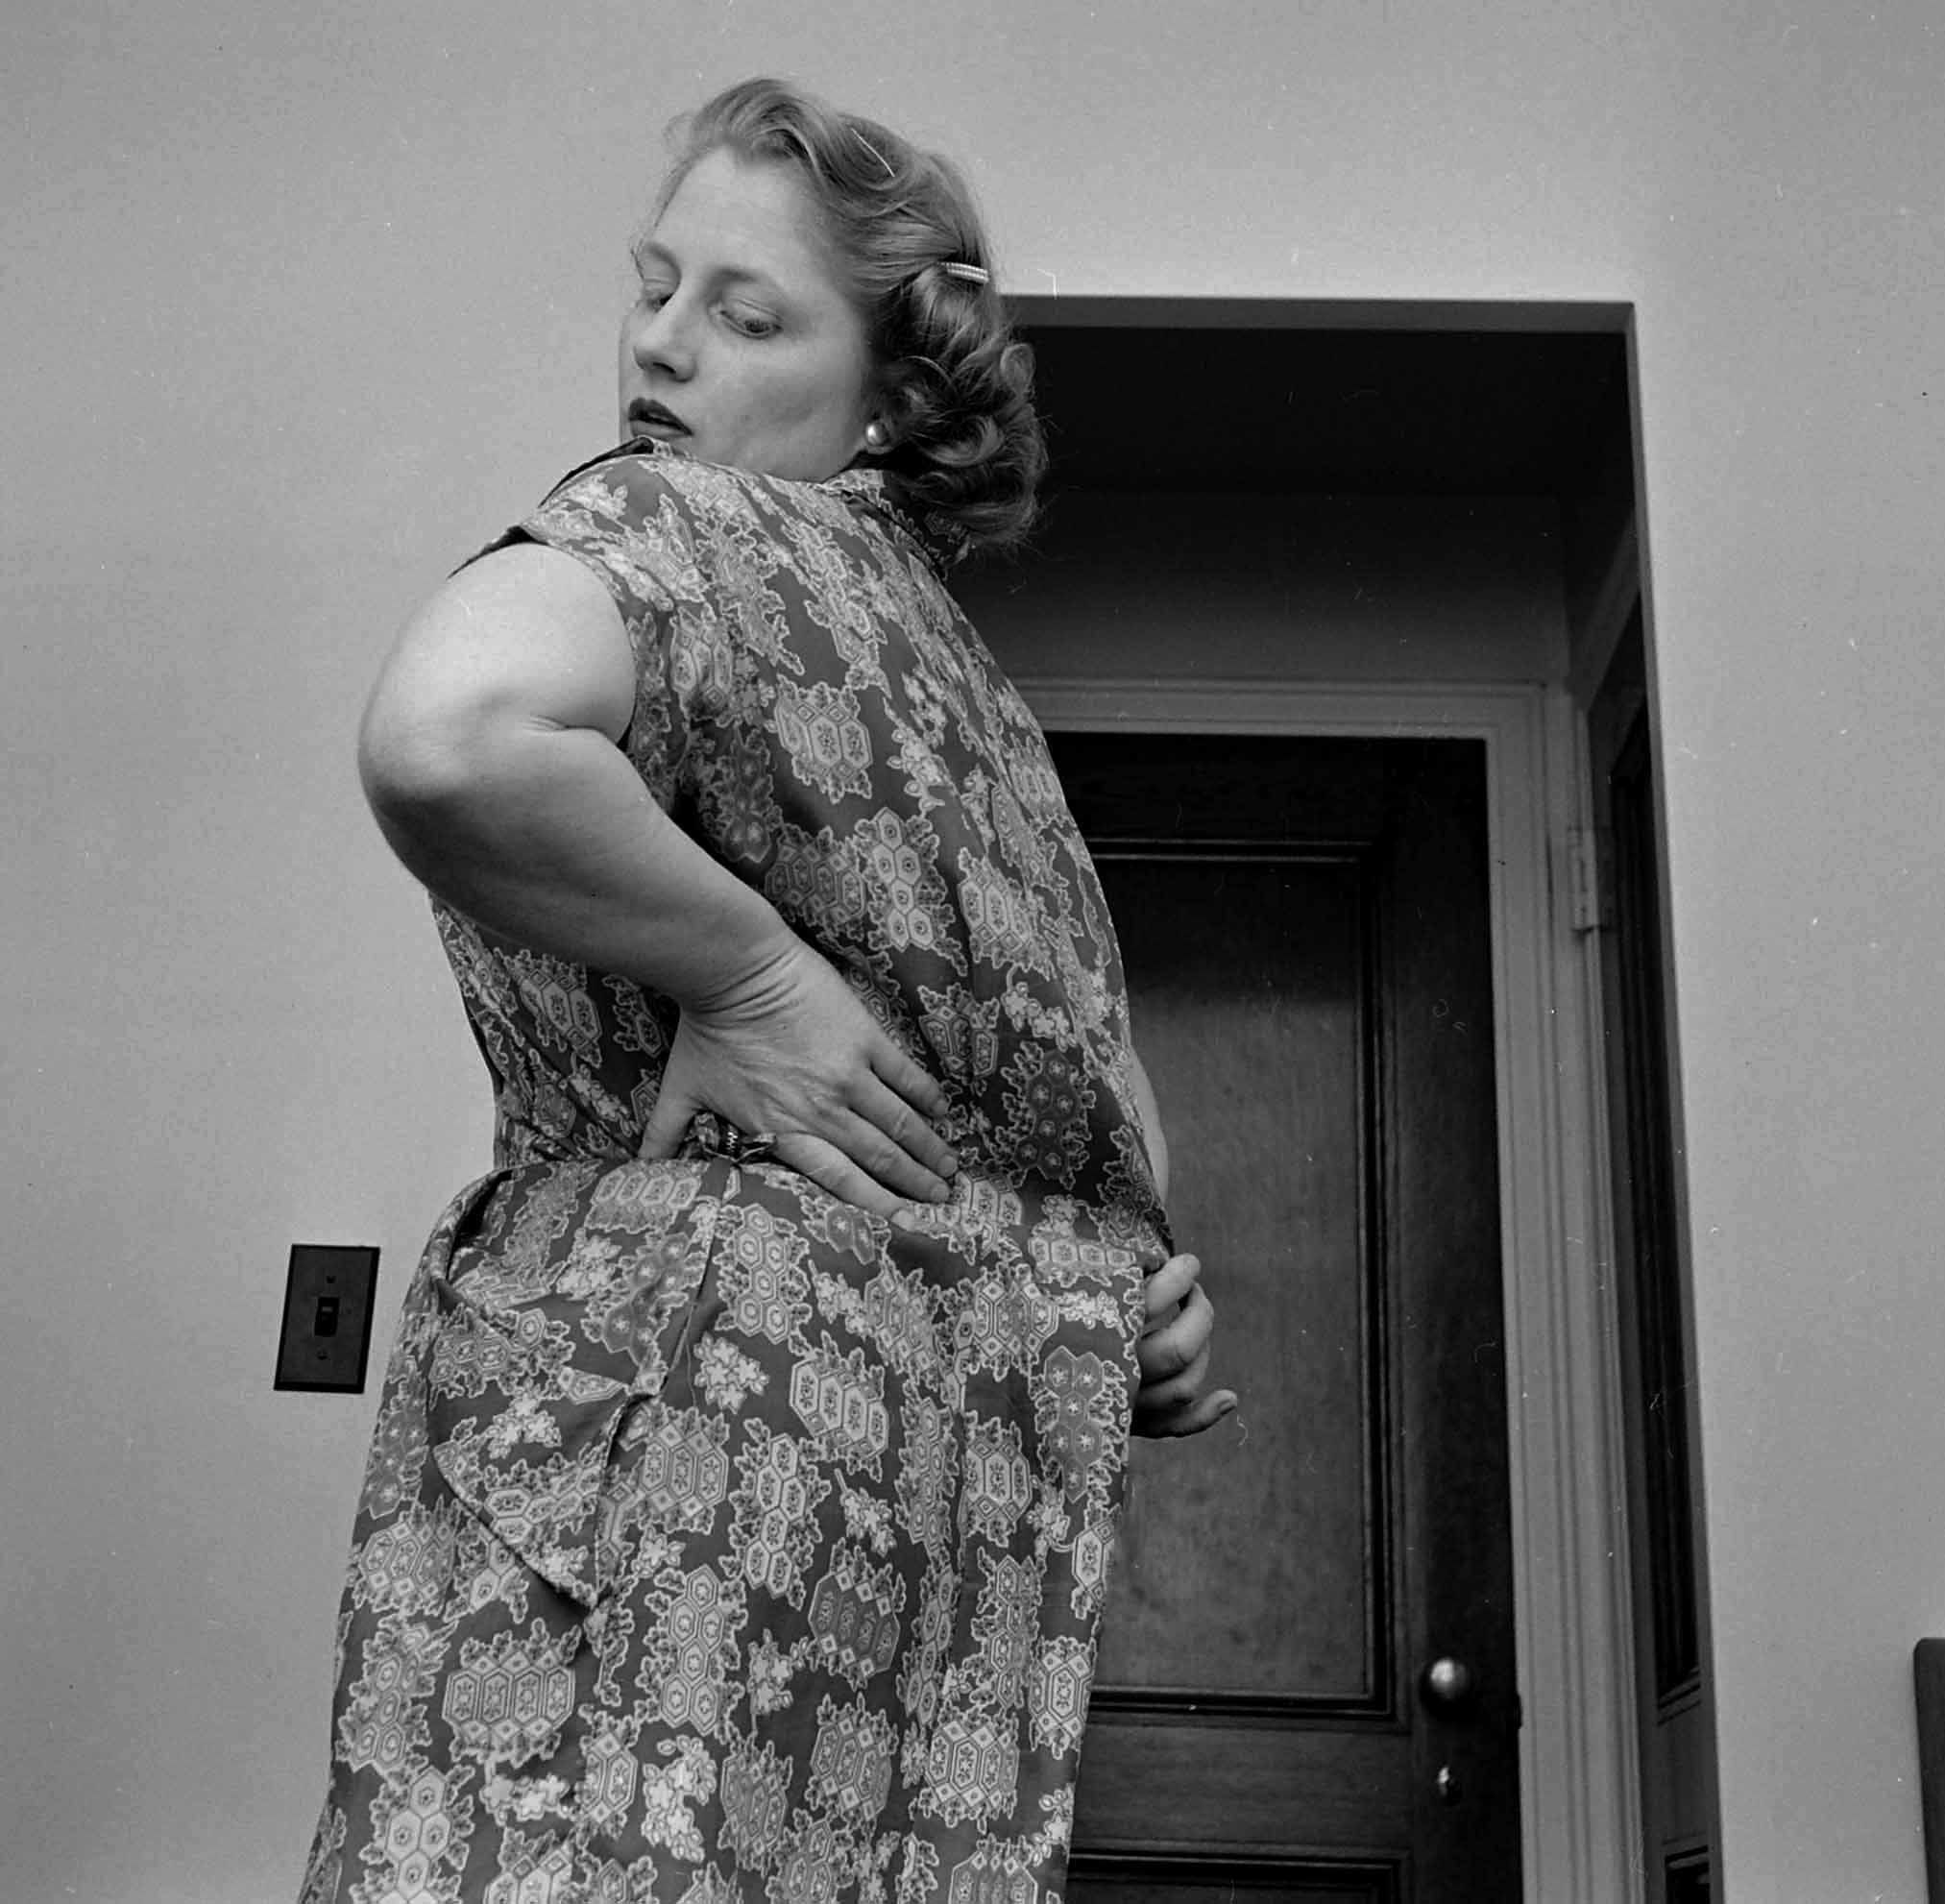 Dorothy Bradley, photographed for LIFE magazine article on obesity, tries on a dress, 1949.